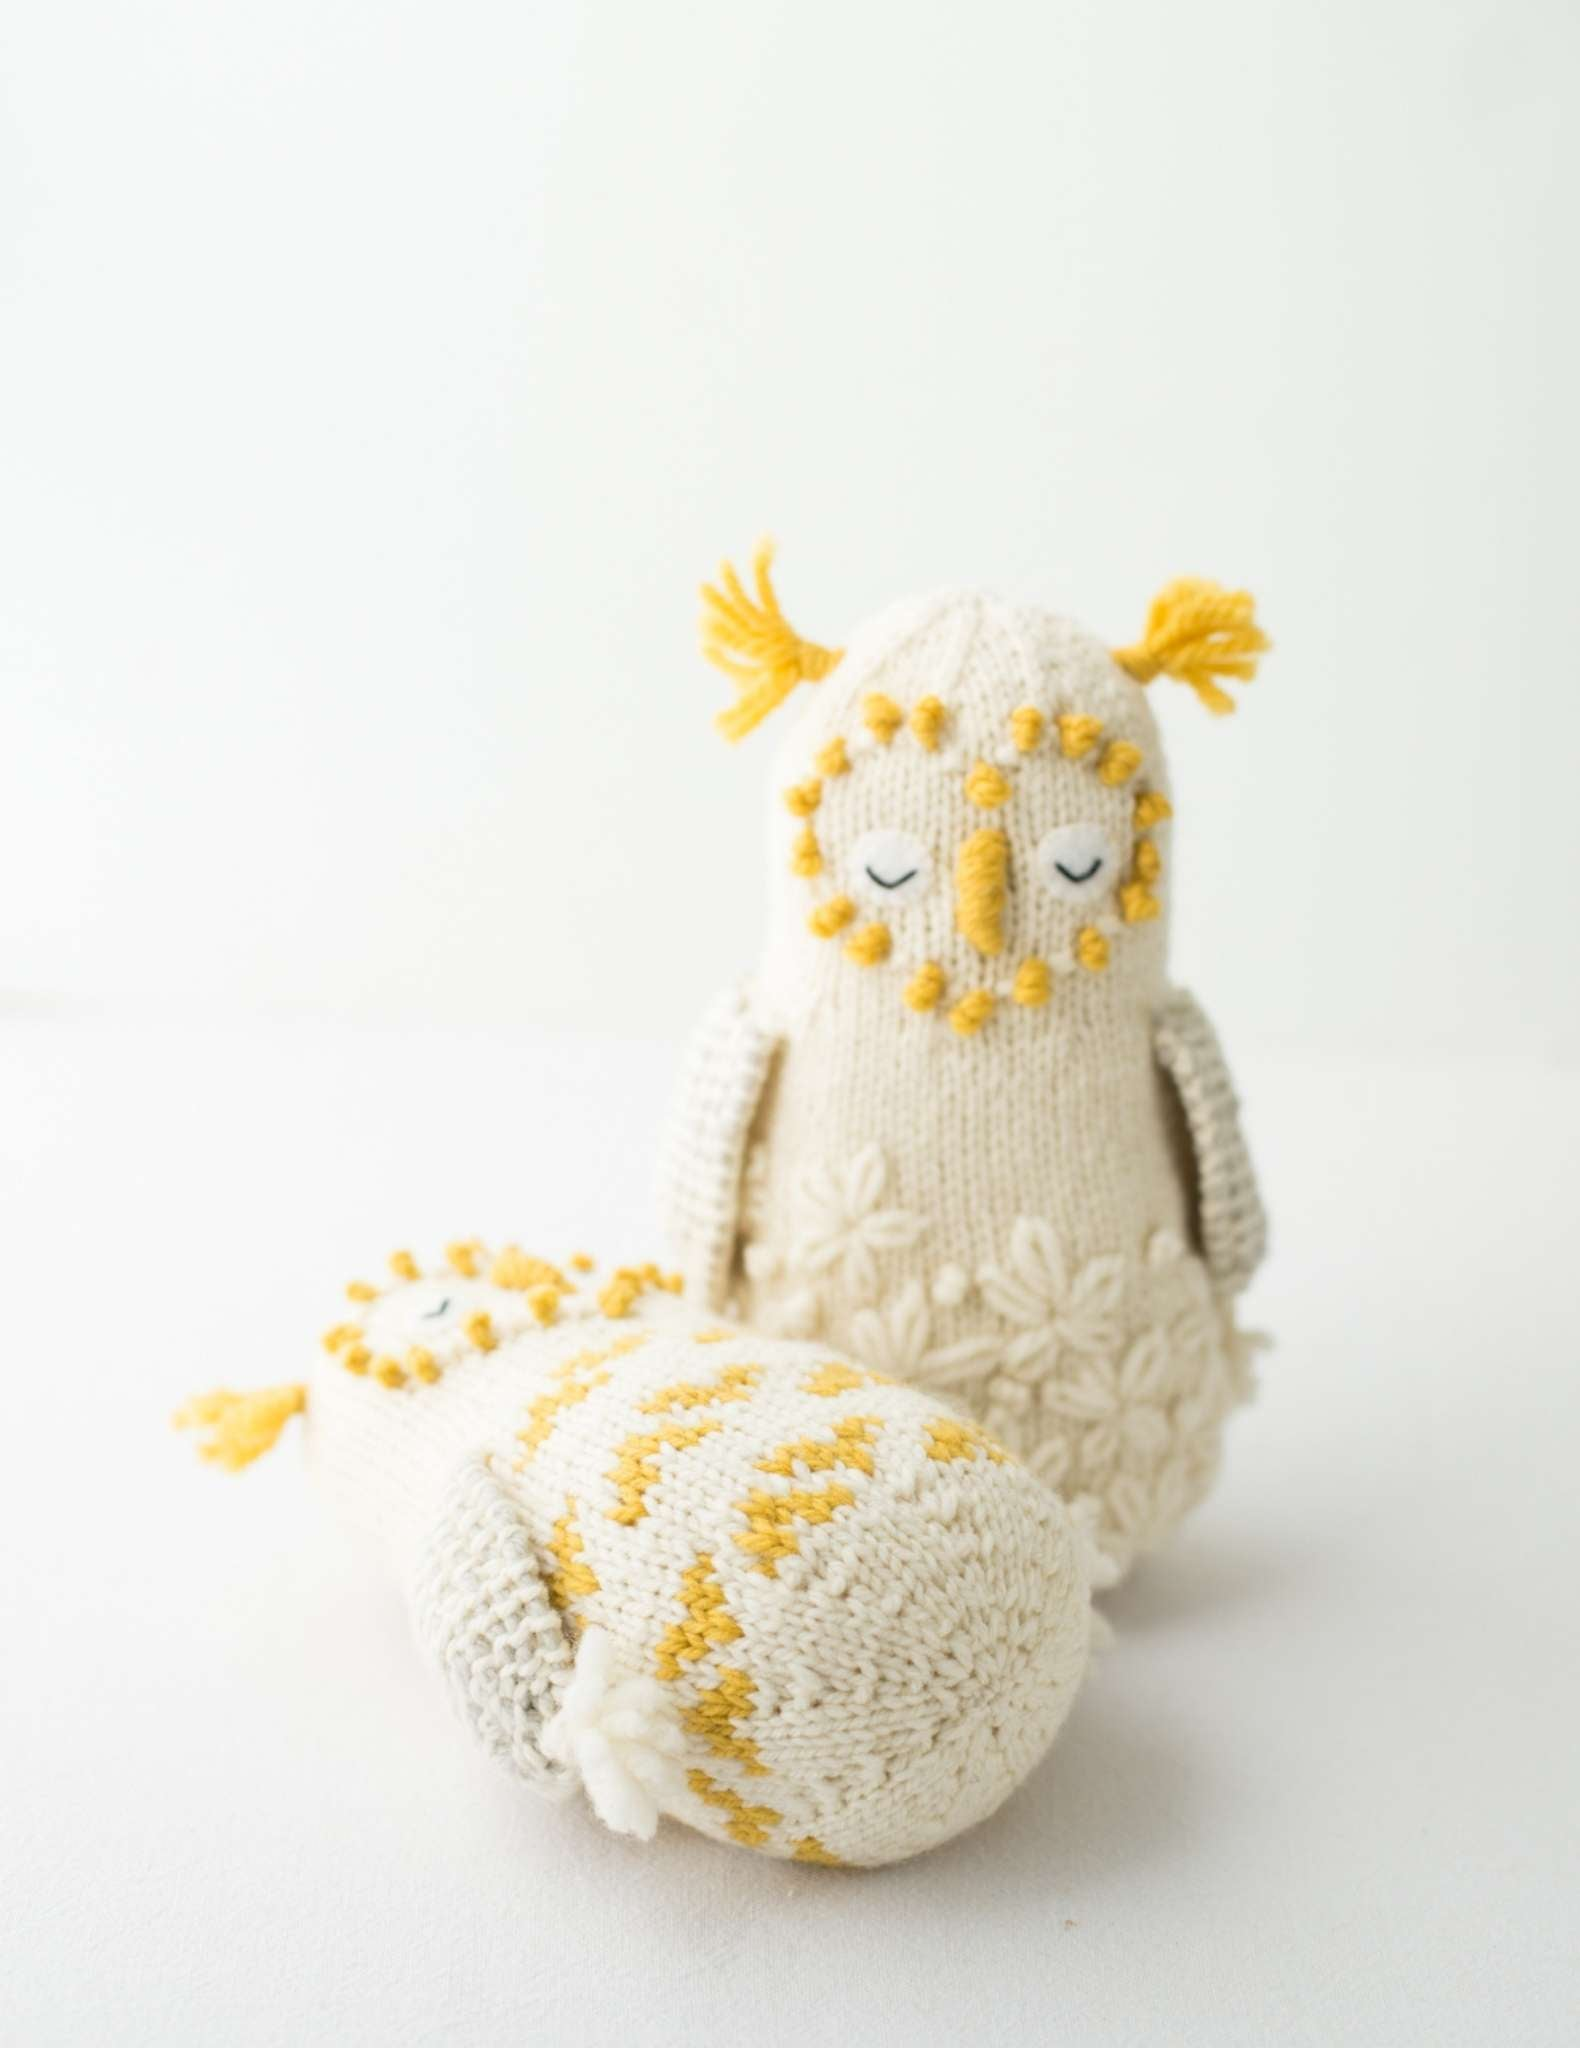 Two white knitted owls, with yellow details on the ears and face. One stands up straight at the camera, while the other lays down on its back beside the other.